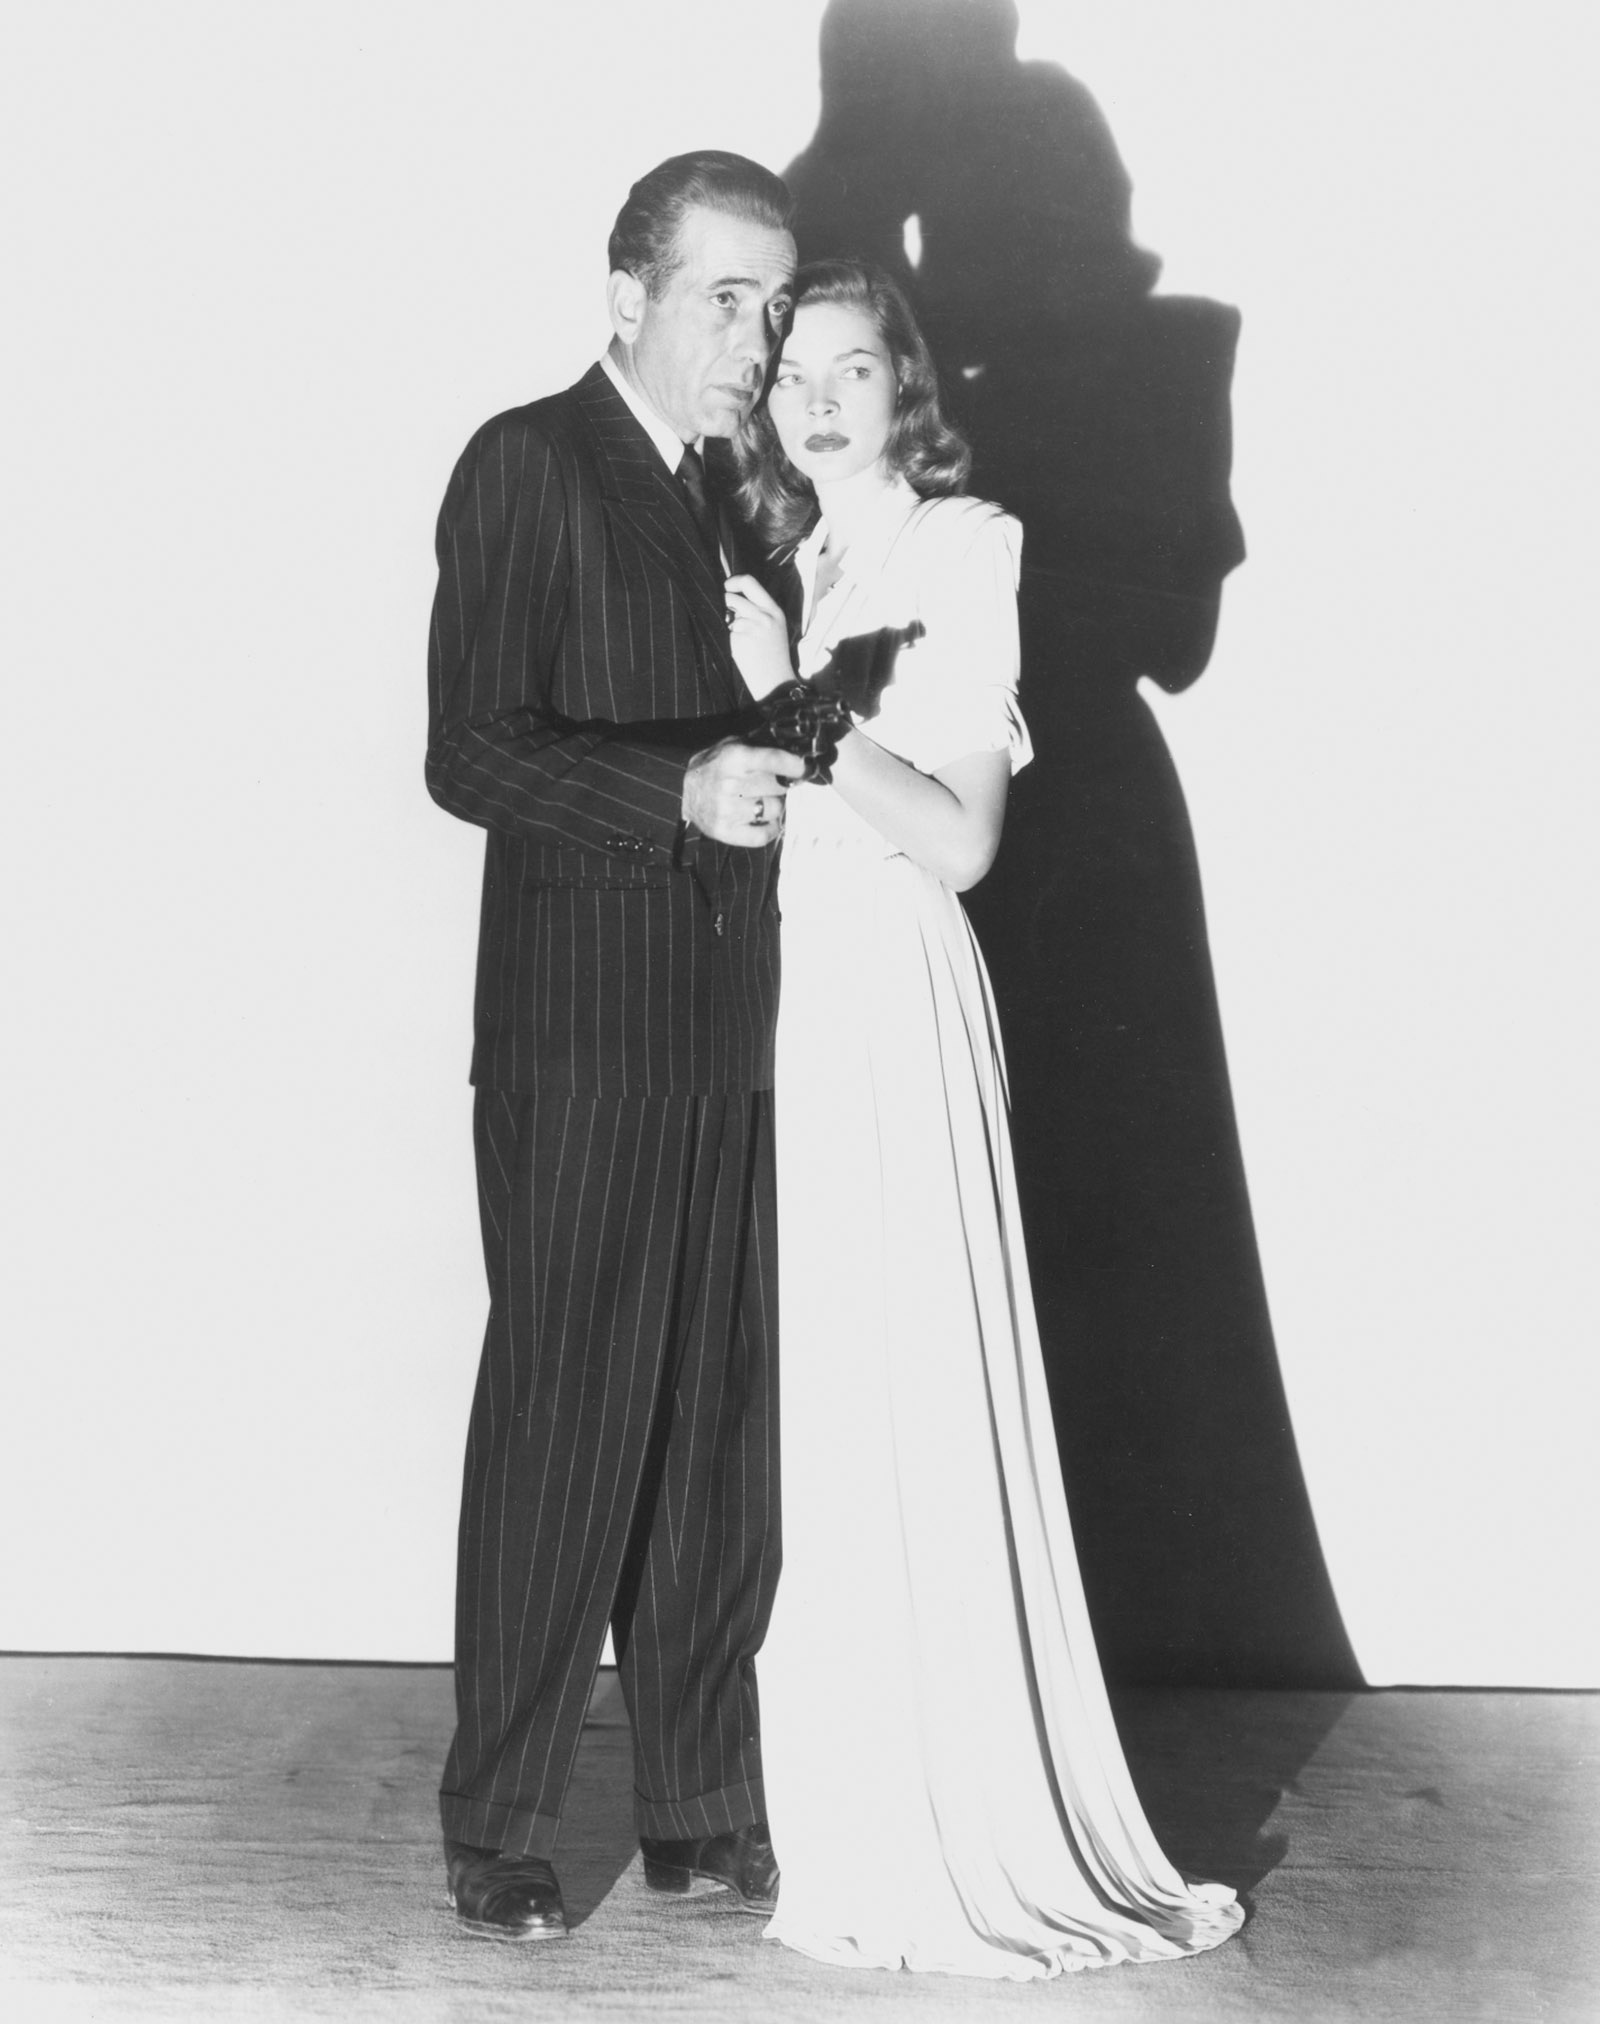 Humphrey Bogart and Lauren Bacall in a publicity photograph for the film adaptation of Raymond Chandler's The Big Sleep, 1946